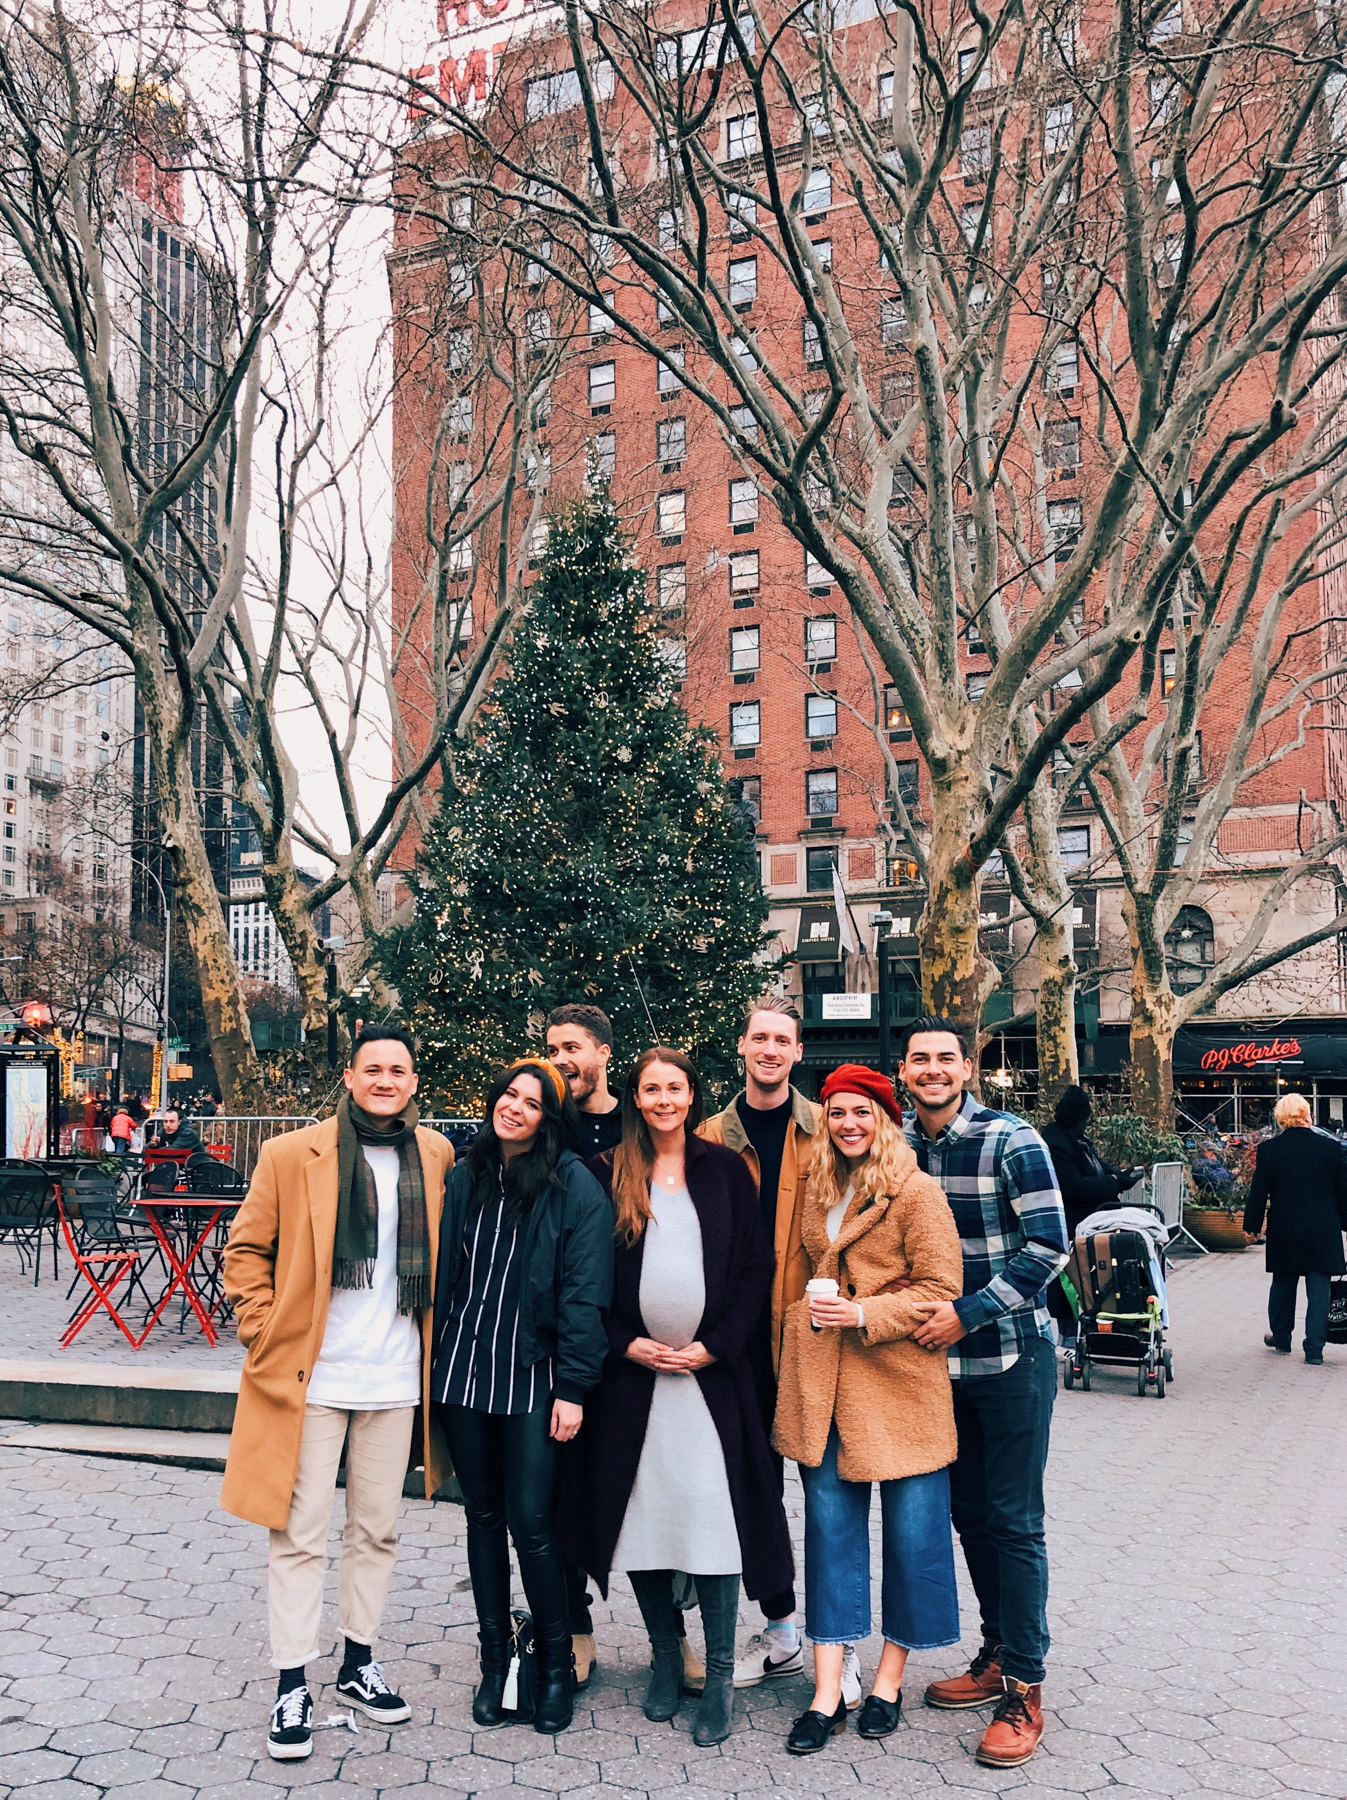 The New York fam in front of the Christmas Tree in Lincoln Square